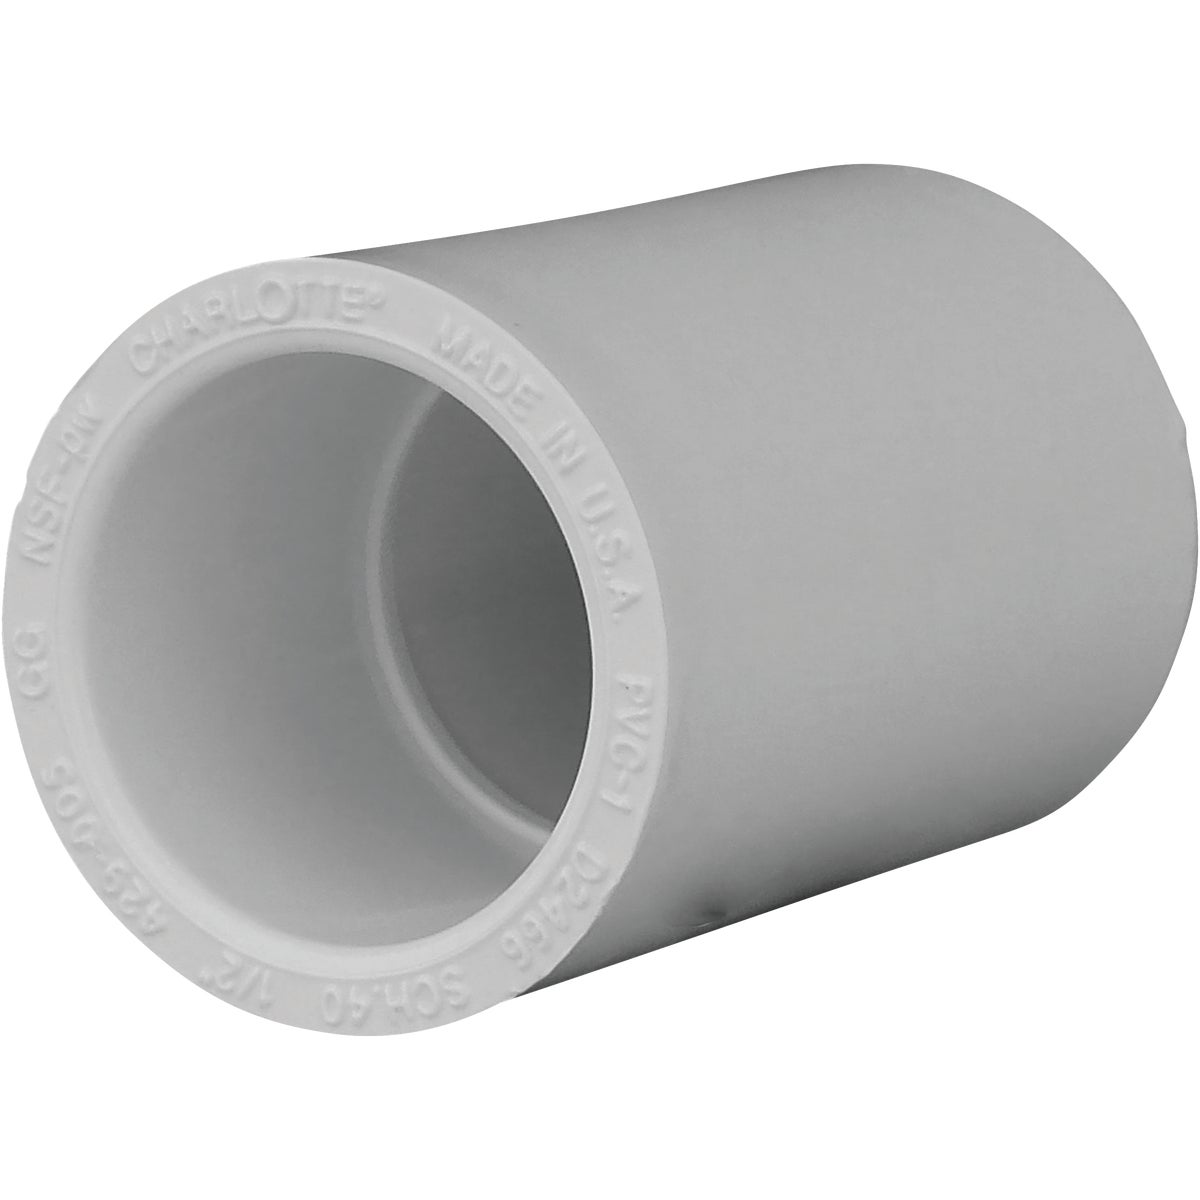 "1/2"" SCH40 PVC COUPLING - 30105 by Genova Inc"